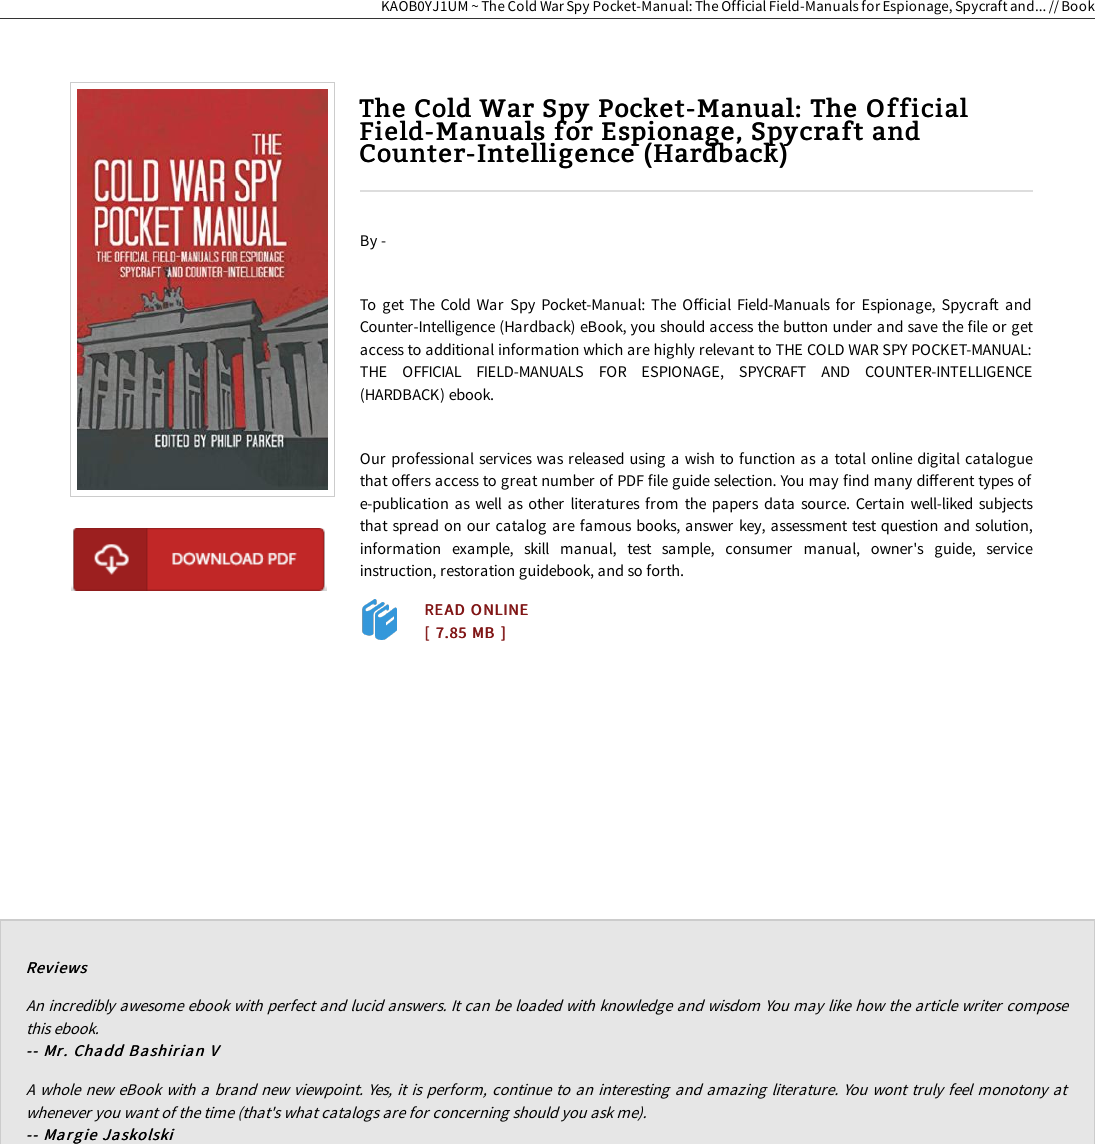 Read EBook The Cold War Spy Pocket Manual: Official Field Manuals